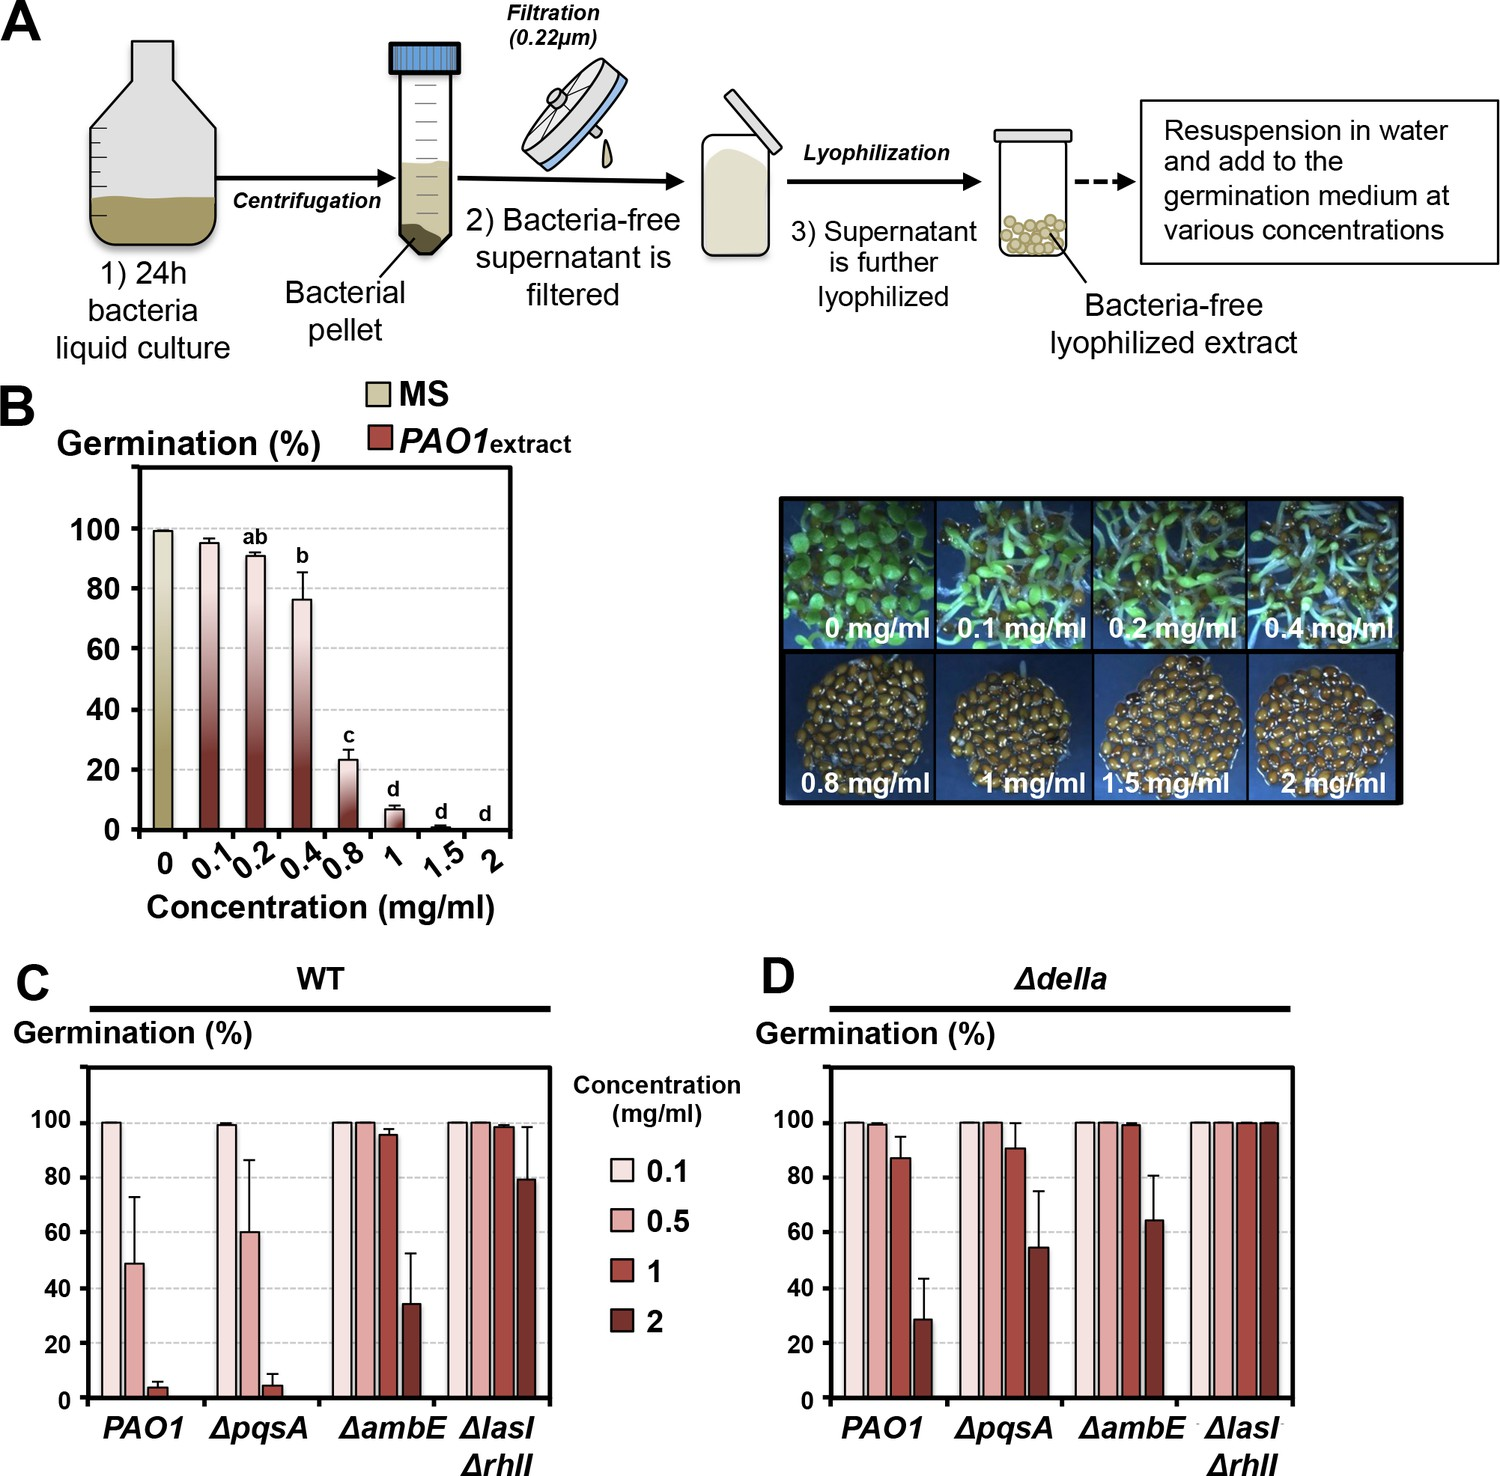 The Plant Pathogen Pseudomonas Aeruginosa Triggers A Della Dependent Seed Germination Diagram Monocot Lyophilized Extracts Of P Liquid Culture Medium Elicit Arrest Responses Similar To Those Observed With In